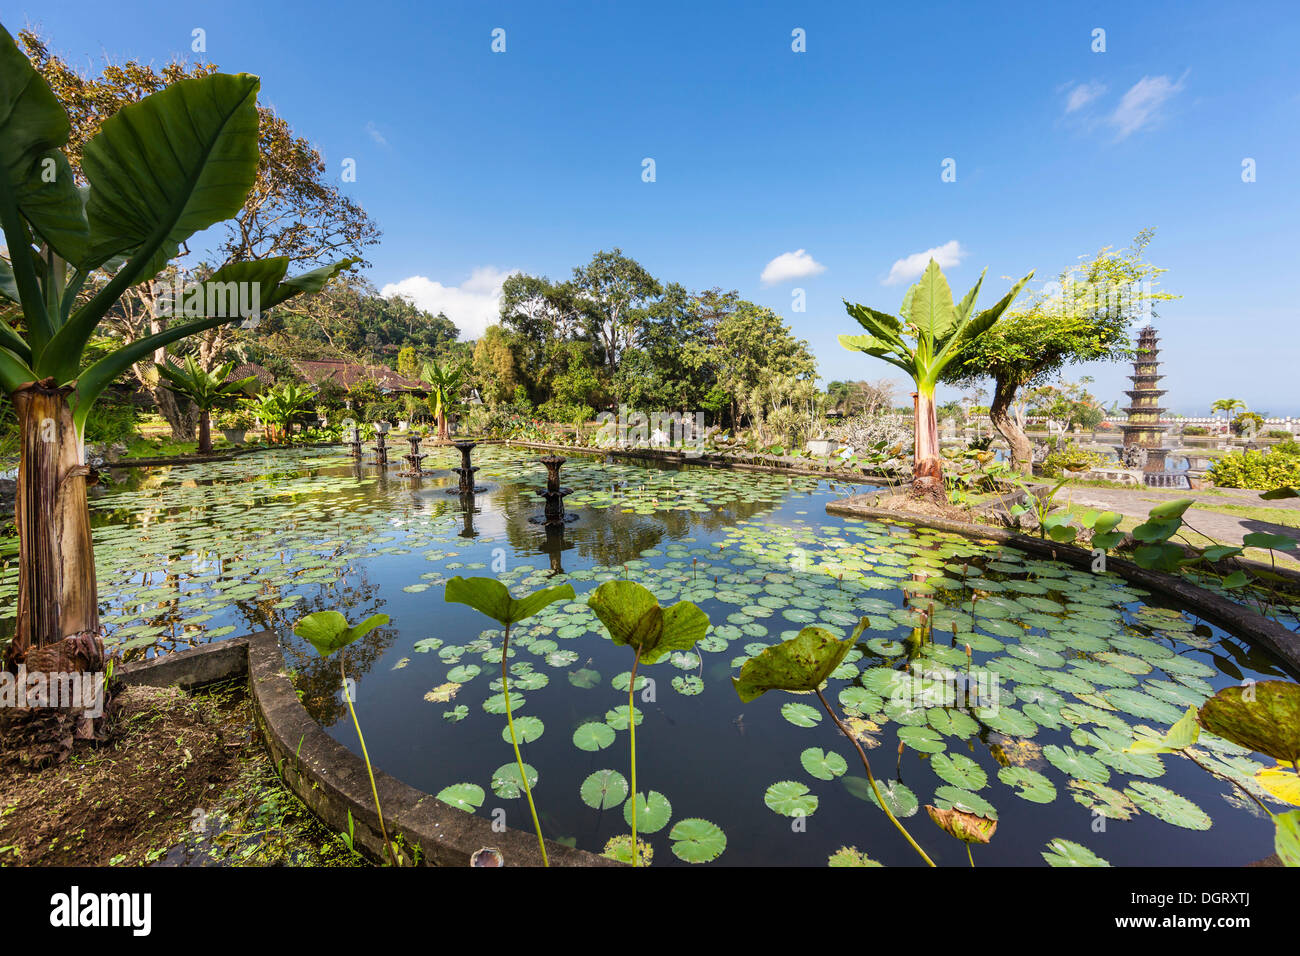 Tirta Gangga Royal Water Garden: Ababi Stock Photos & Ababi Stock Images